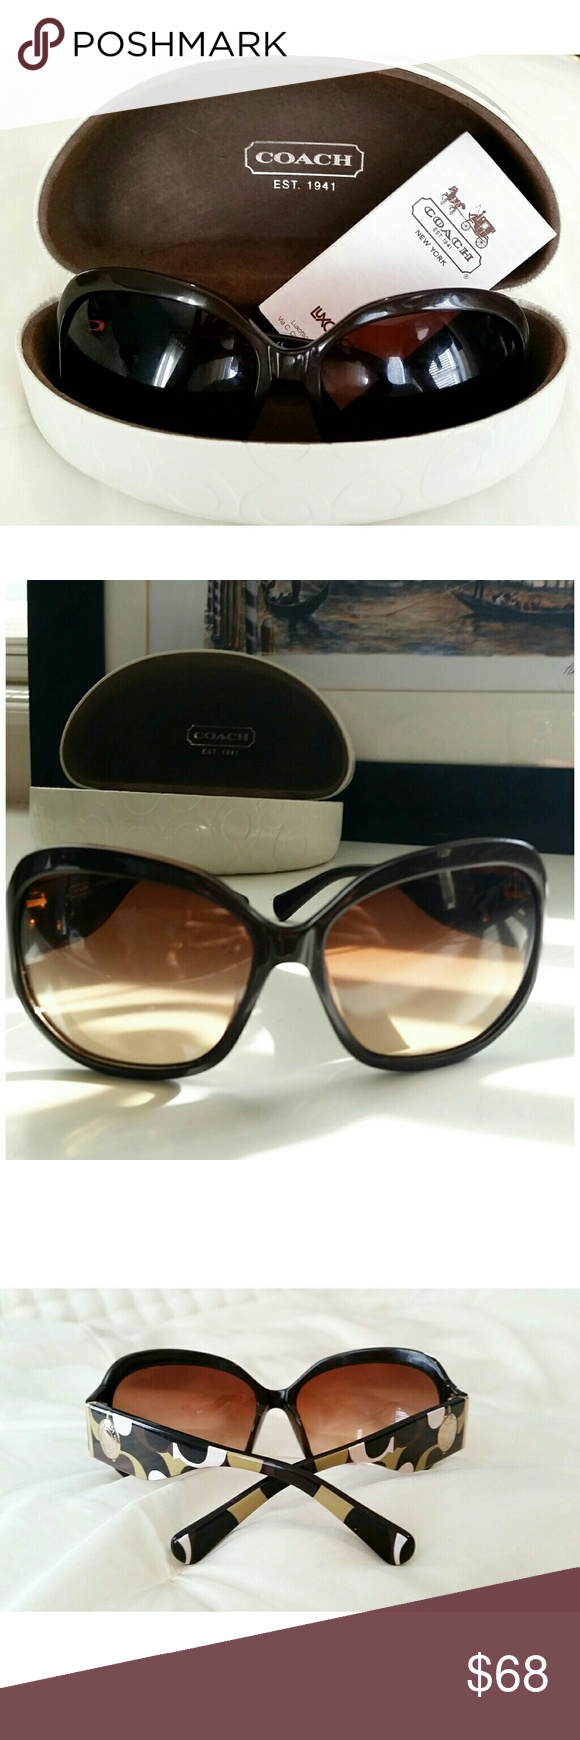 6aa3bbfbaf83c Coach Sunglases Coach Sunglases With Original Packaging